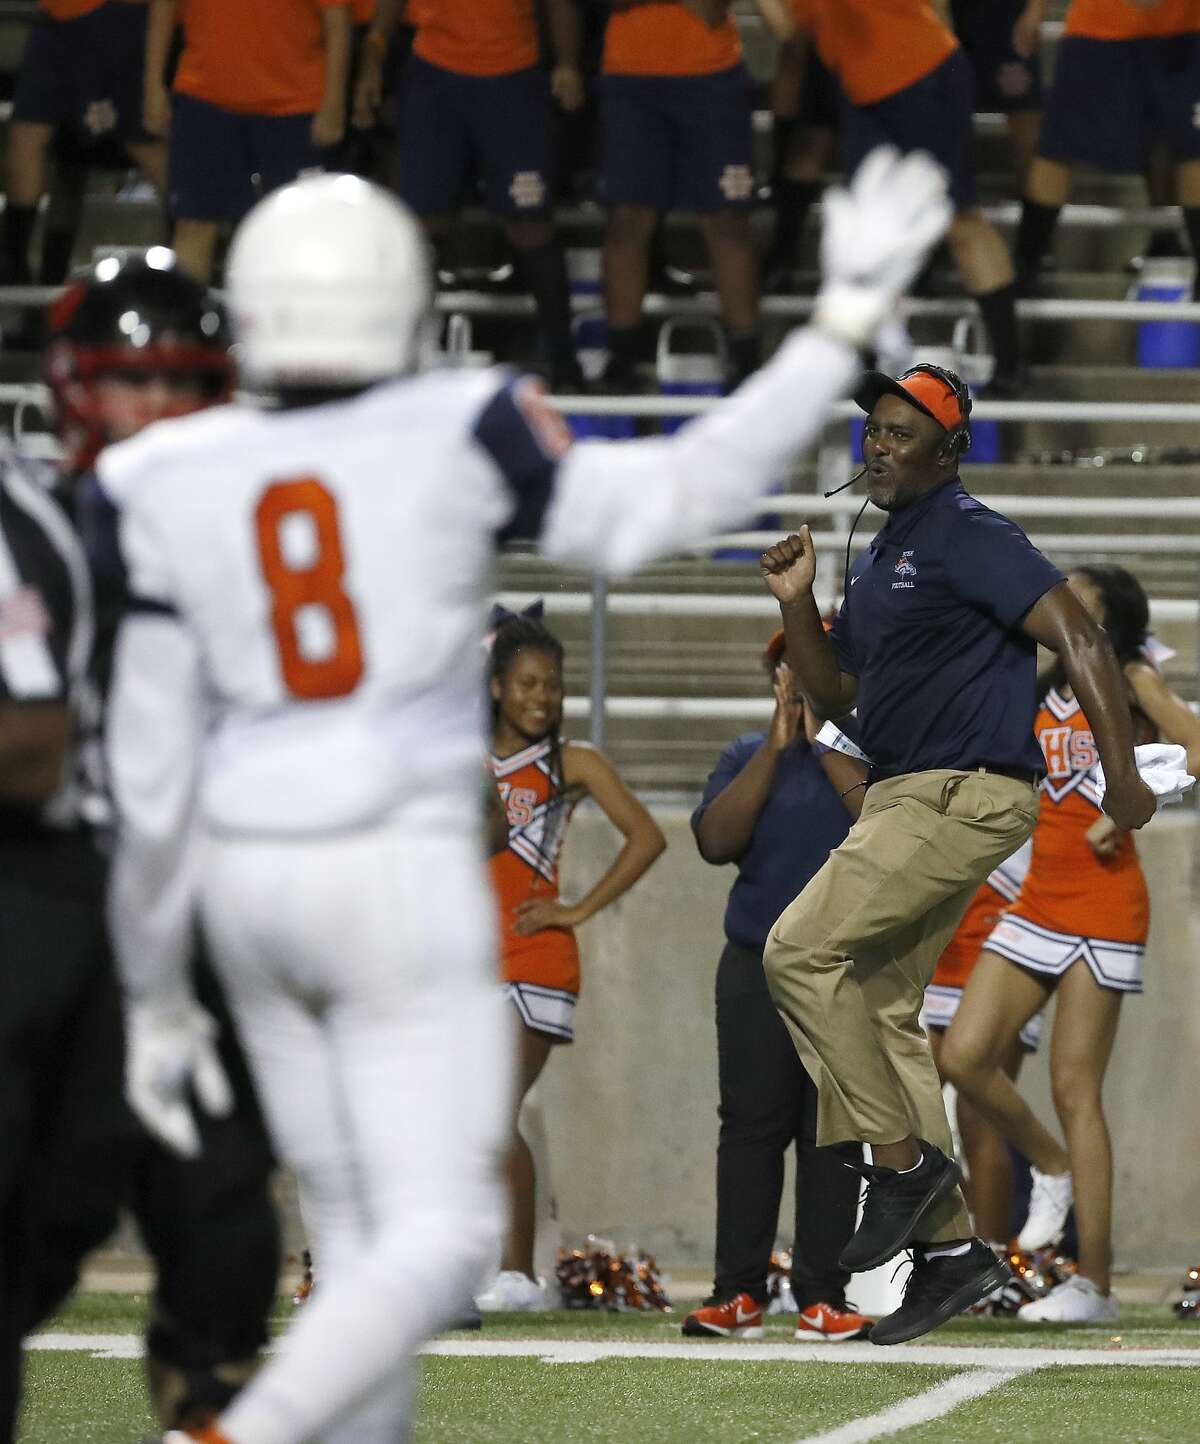 A George Bush coach dances as he celebrates the defense putting a stop on Langham Creek during the second half of a high school football game between Fort Bend Bush and Langham Creek, Thursday, September 6, 2018, at Cy-Fair FCU Stadium.